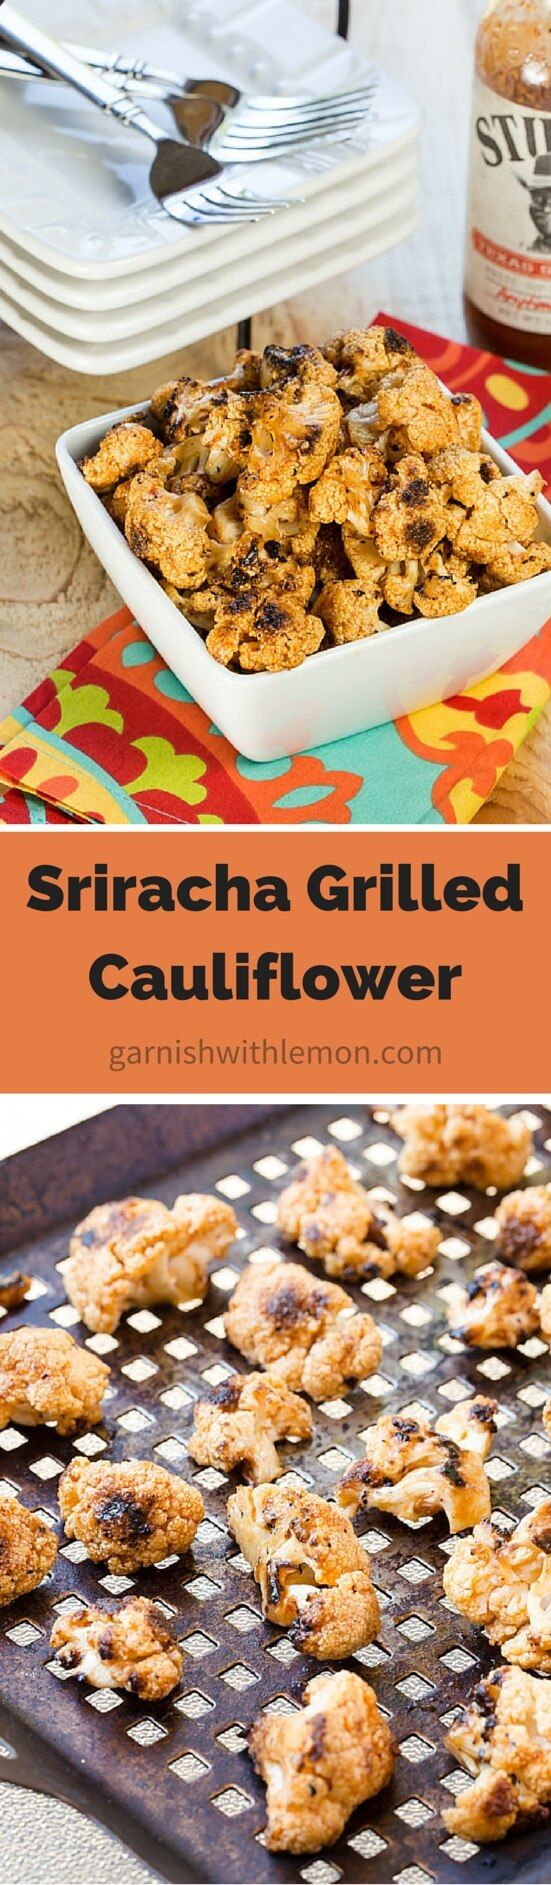 Say no to boring cauliflower! Our Sriracha Grilled Cauliflower is a quick, easy and super flavorful side dish that you can't get enough of. ~ http://www.garnishwithlemon.com